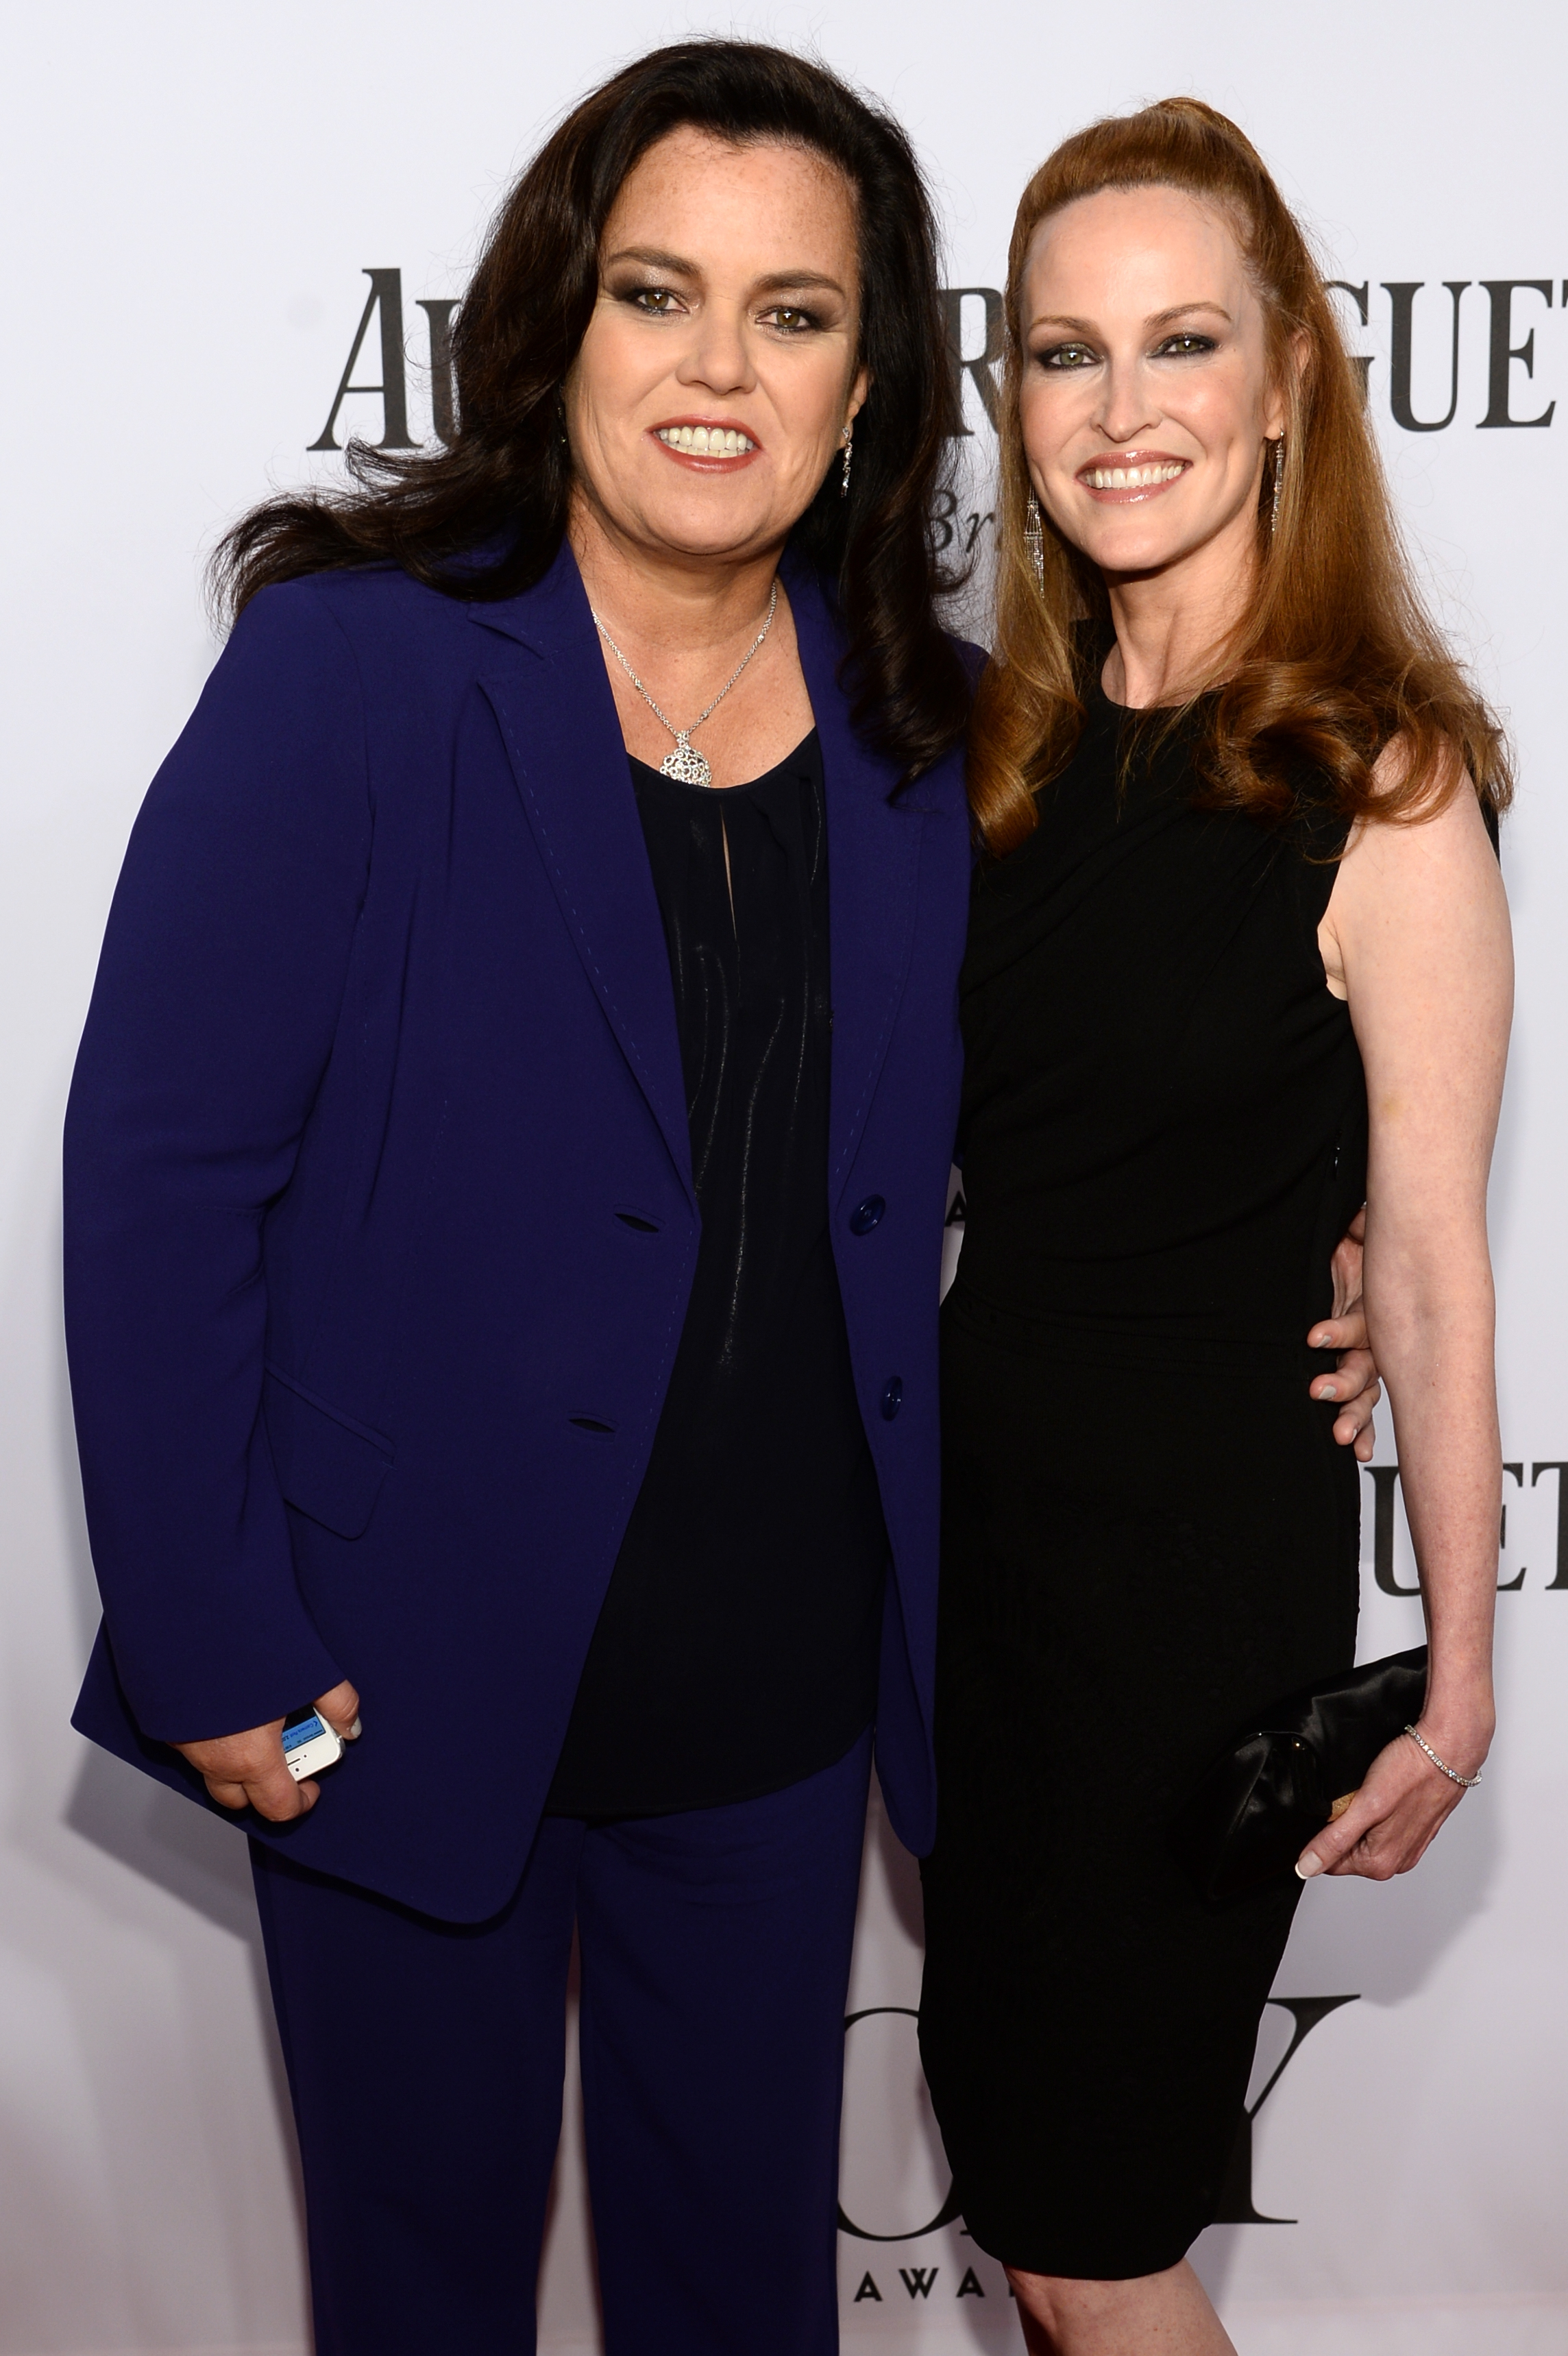 Rosie O'Donnell Ex-Wife, Michelle Rounds dead, Michelle Rounds Cause Of Death